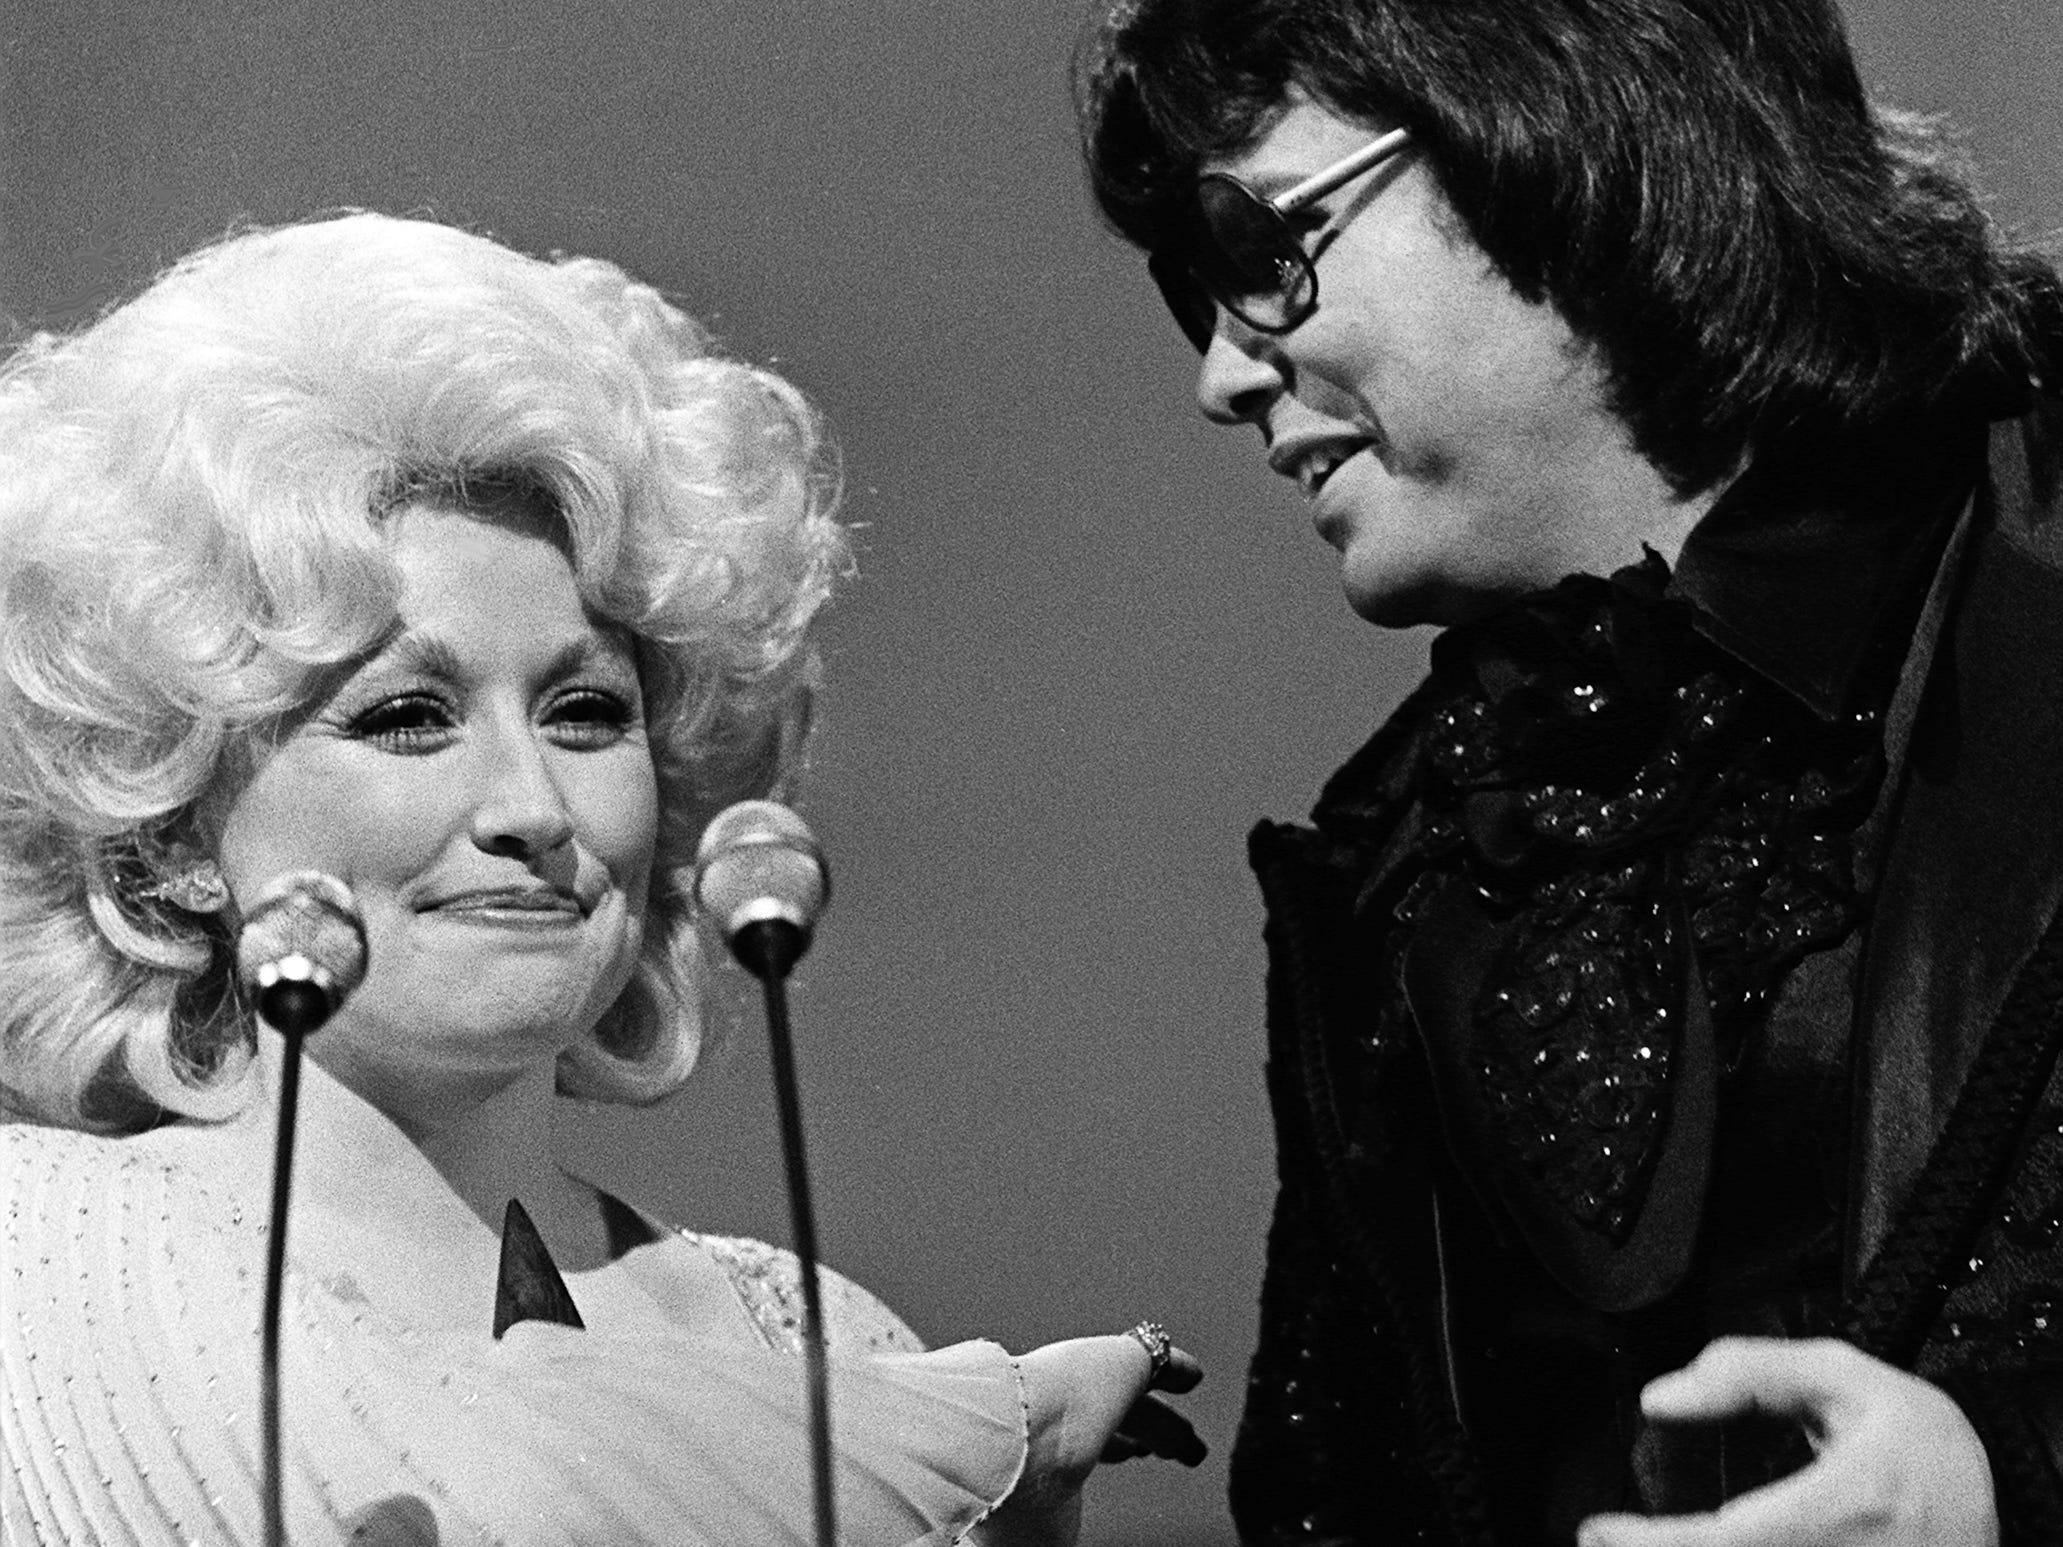 Dolly Parton is congratulated by presenter Ronnie Milsap after winning the Entertainer of the Year award during the 12th annual CMA Awards show Oct. 9, 1978. Parton won only one of the four awards she was nominated for, but it was the one she wanted most.